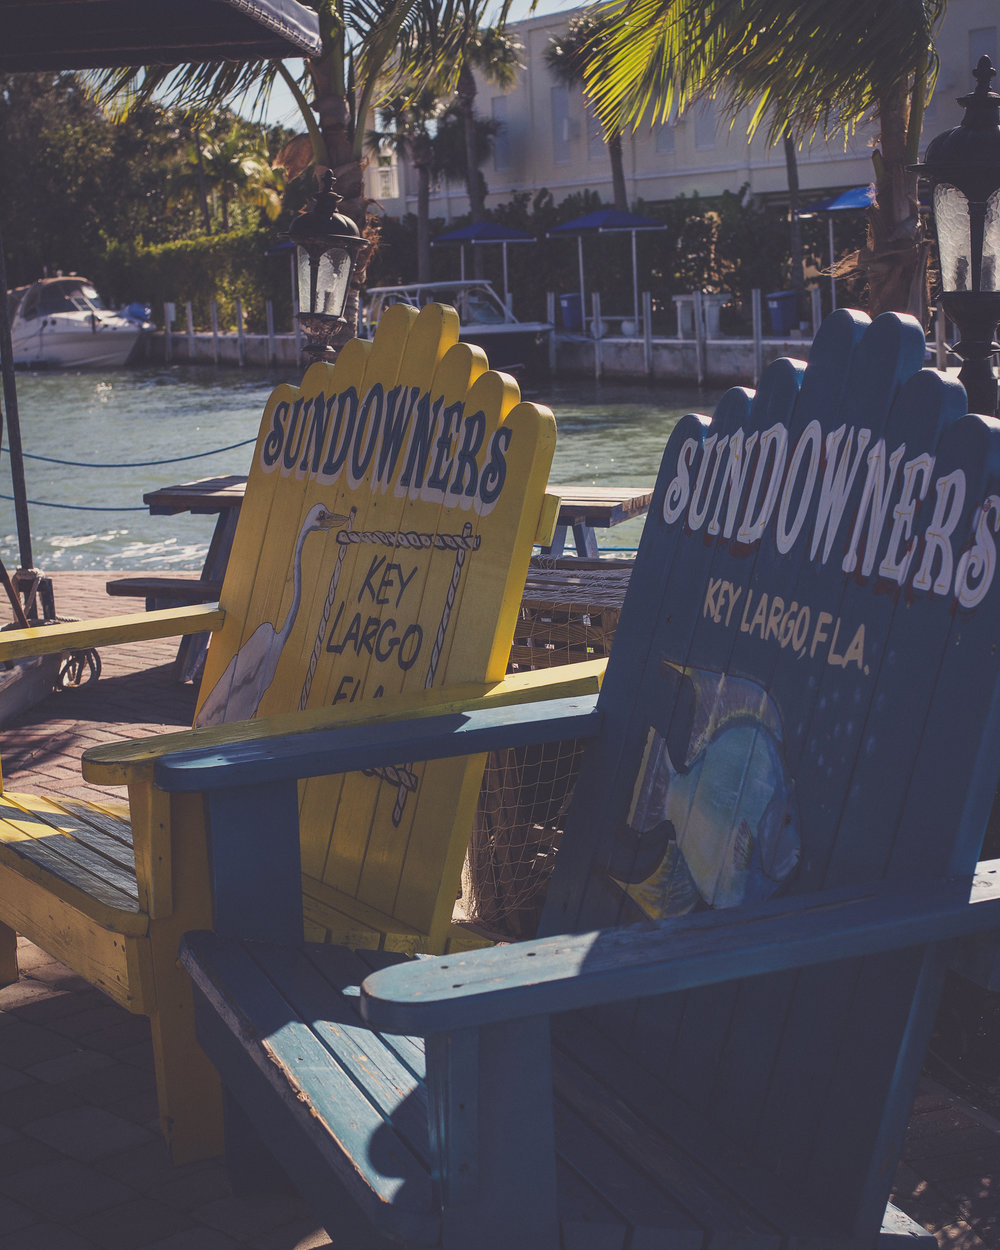 Oversized Adirondack chairs are the perfect photo opportunities